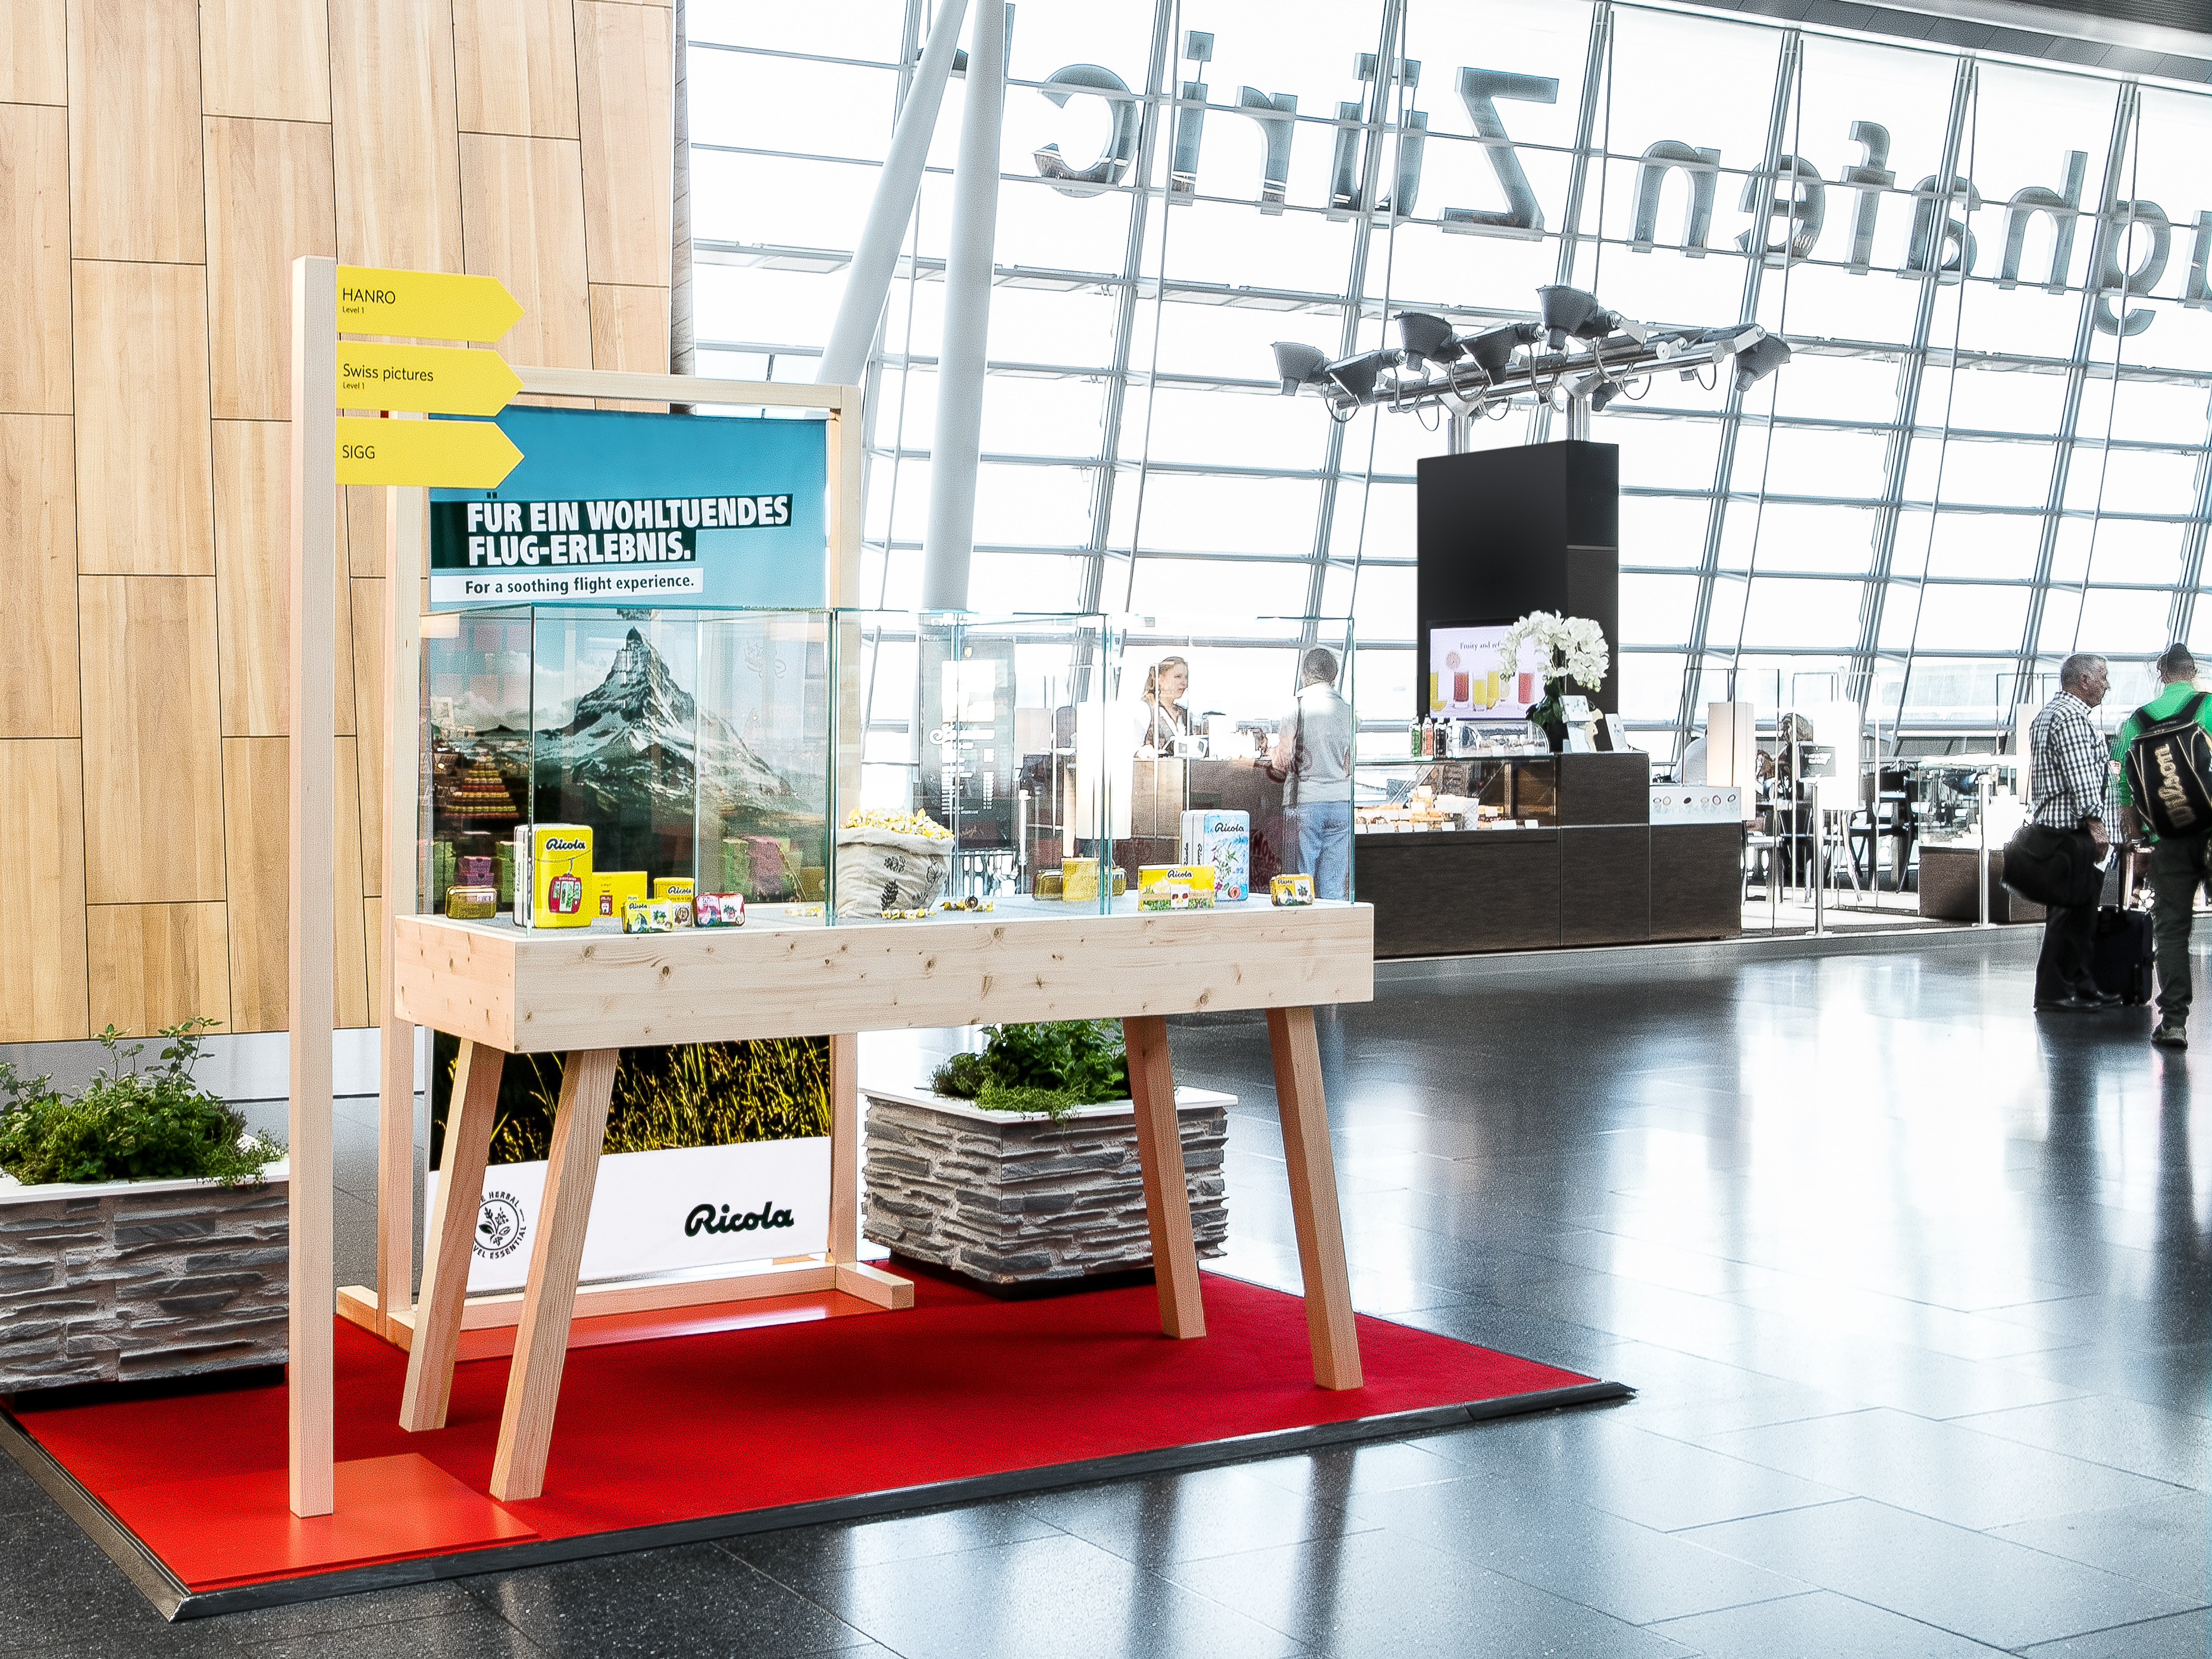 Zuerich Airport Best of Switzerland